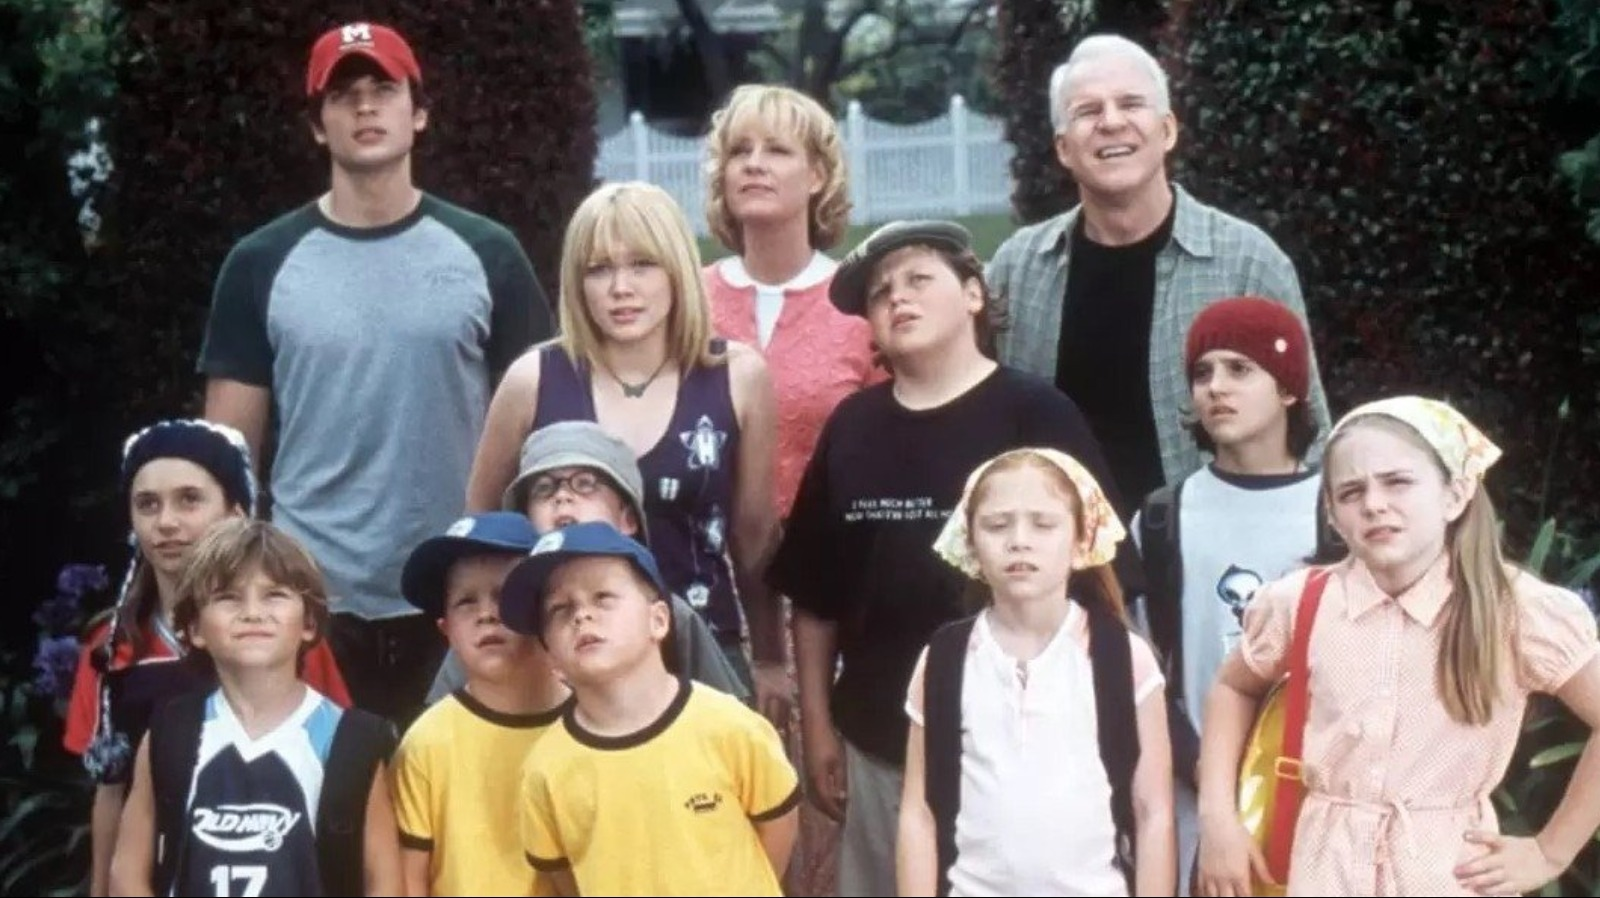 The Cheaper By The Dozen Cast Has Really Grown Up